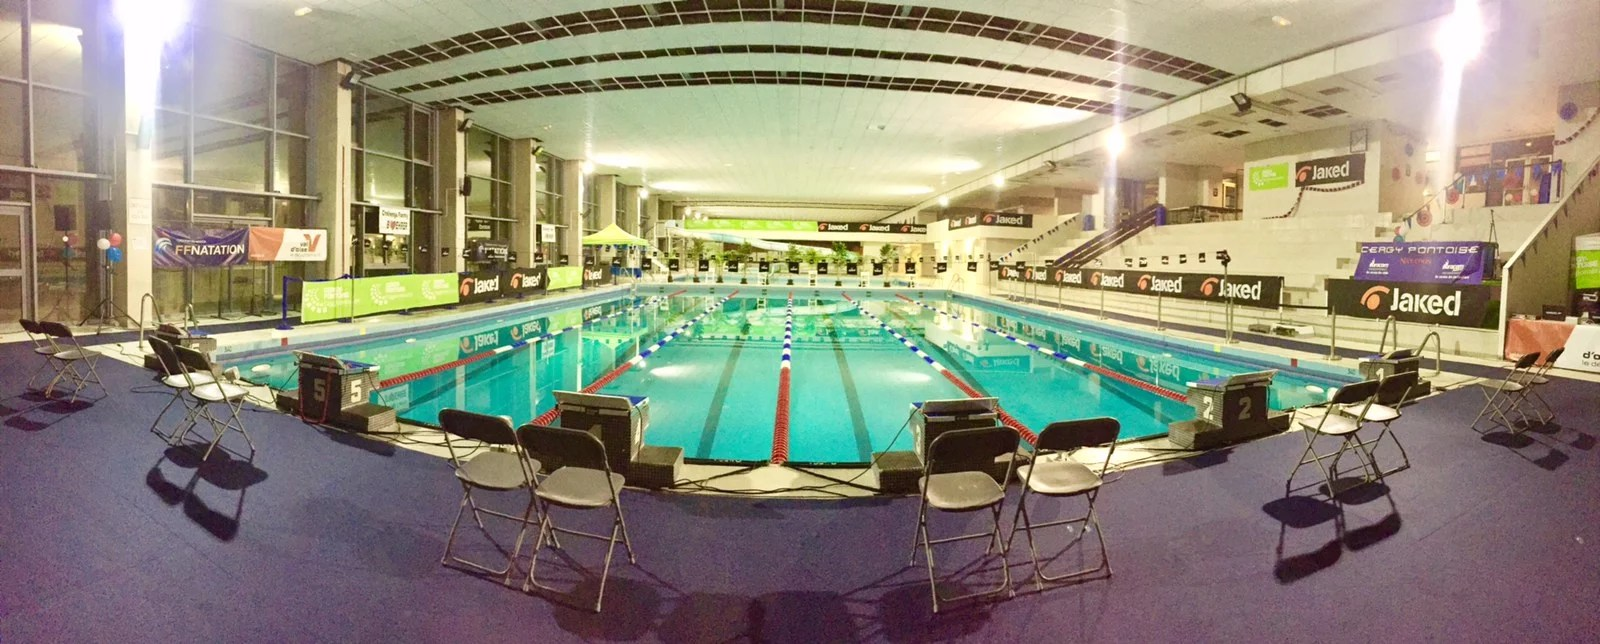 Piscine Pontoise Fitness Cergy Pontoise Natation